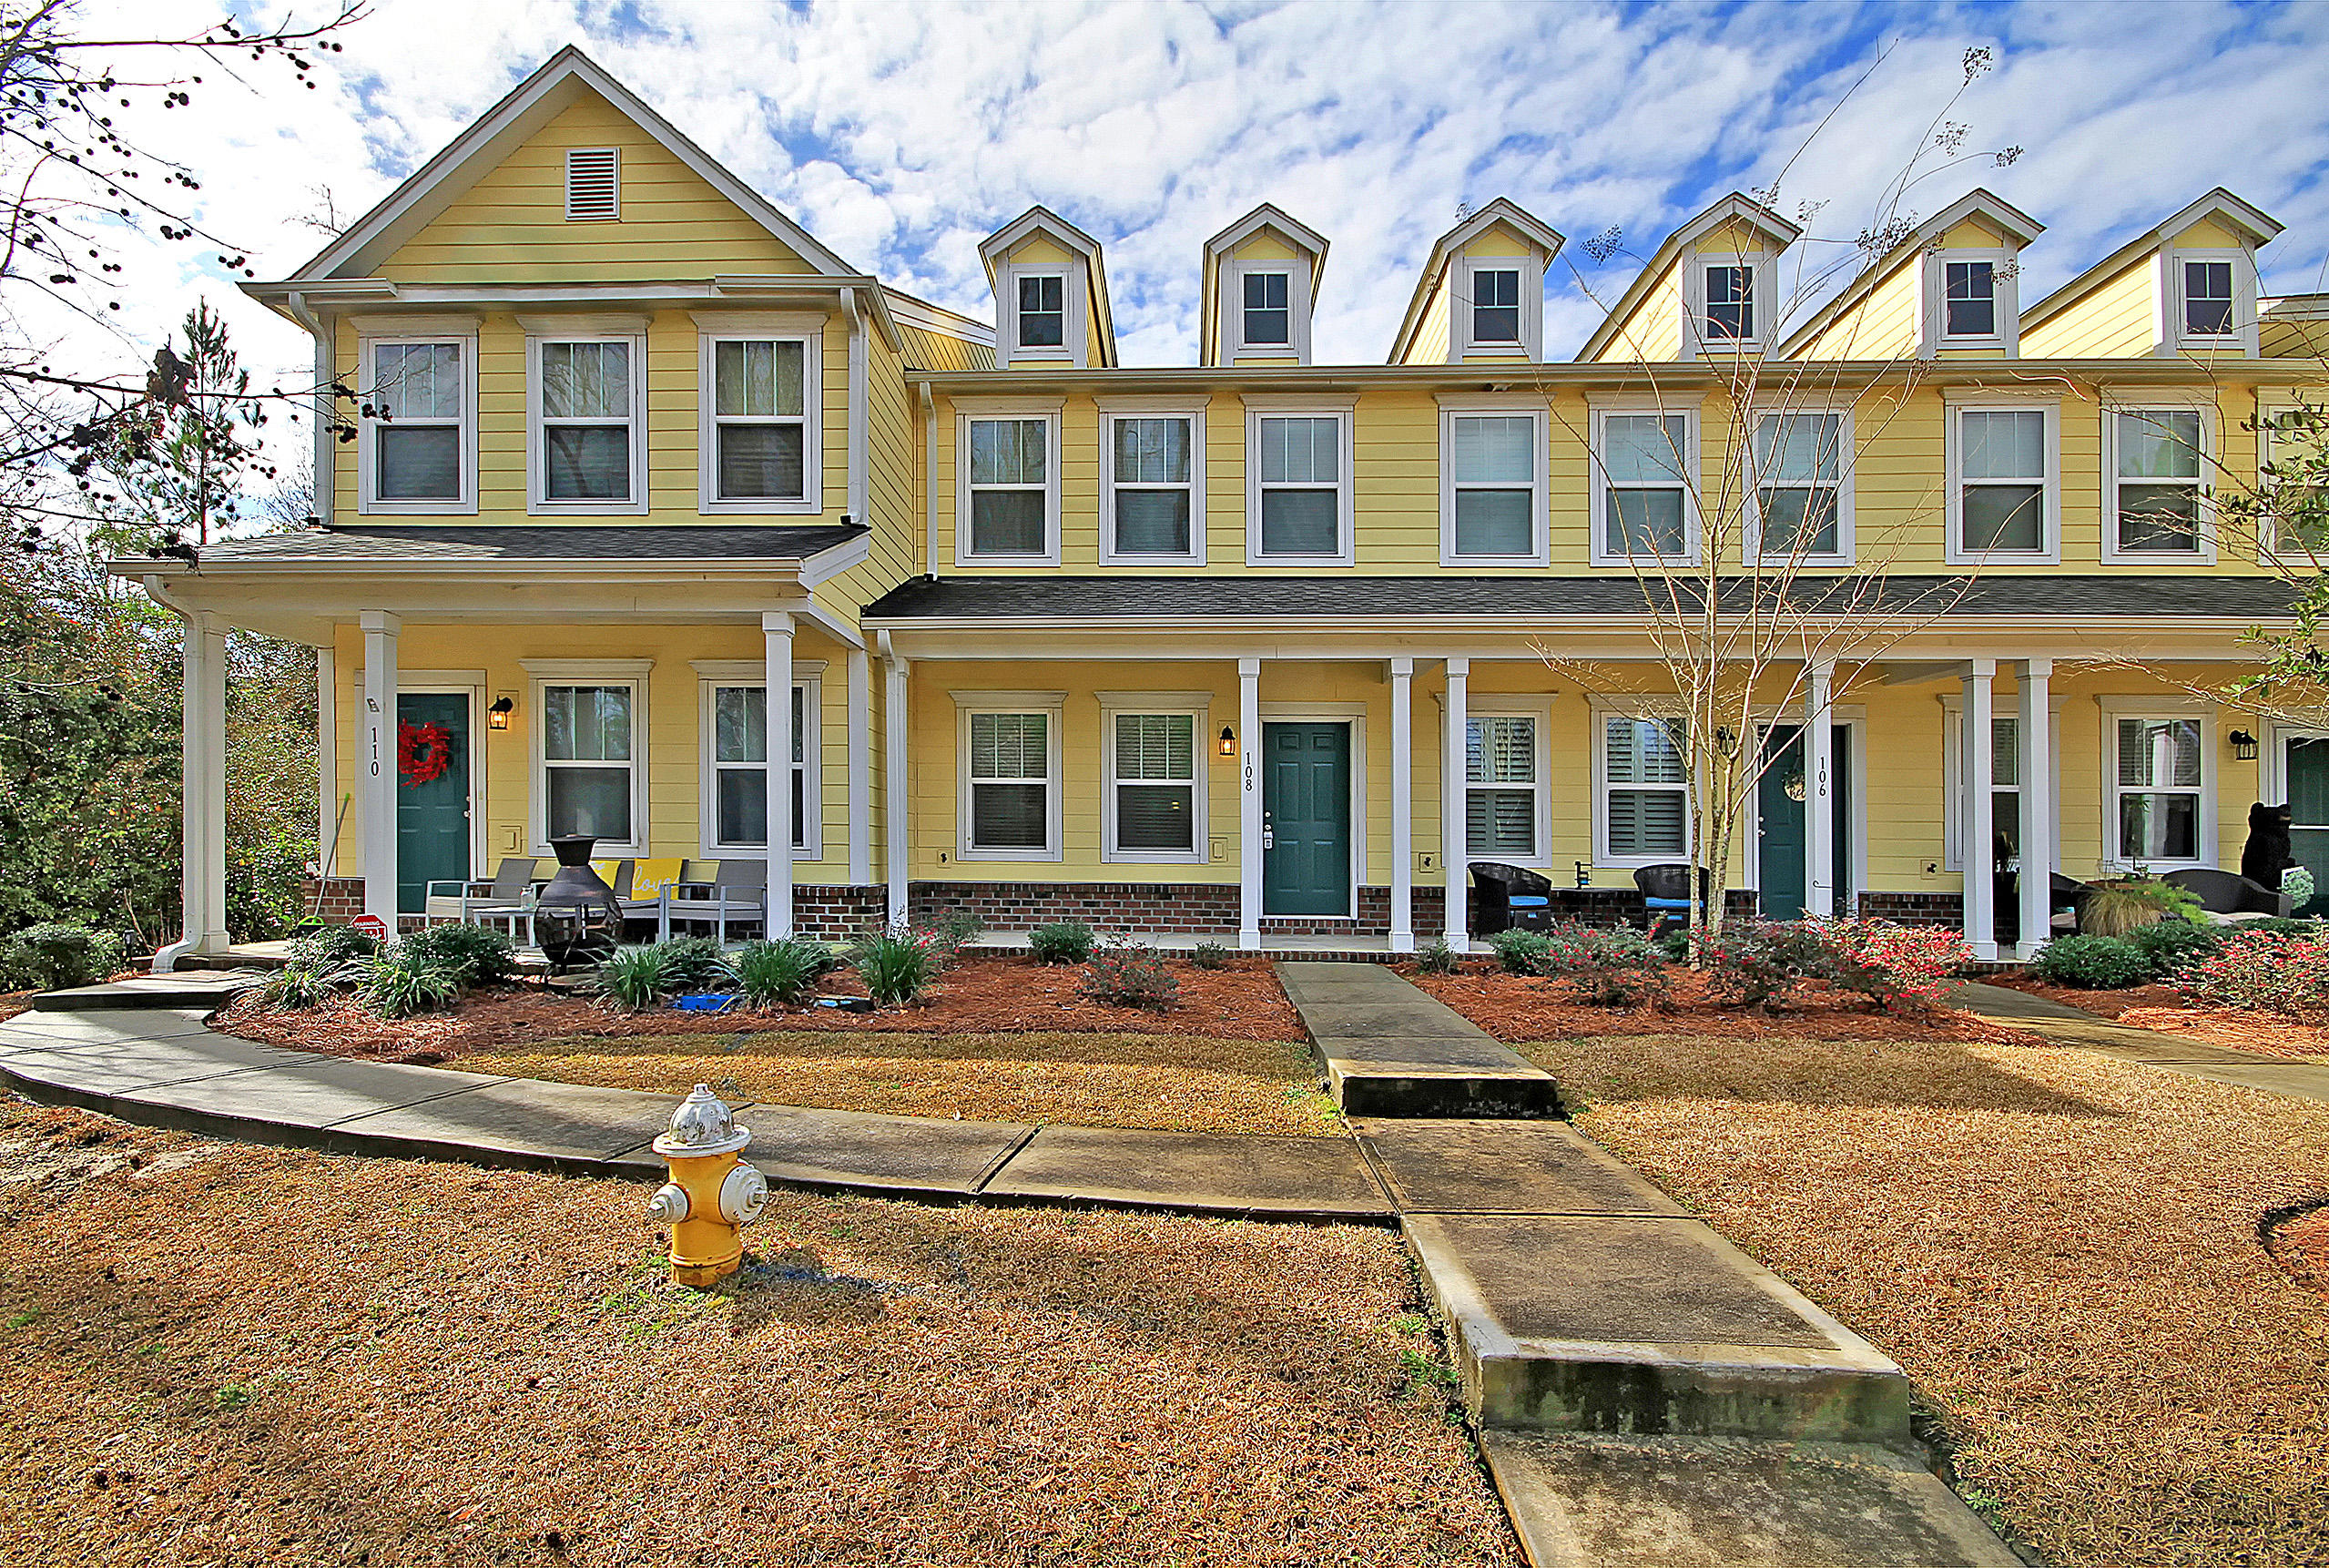 108 Branch Creek Trail, Summerville, 29483, 2 Bedrooms Bedrooms, ,2 BathroomsBathrooms,Single Family Attached,For Sale,Branch Creek,21004714